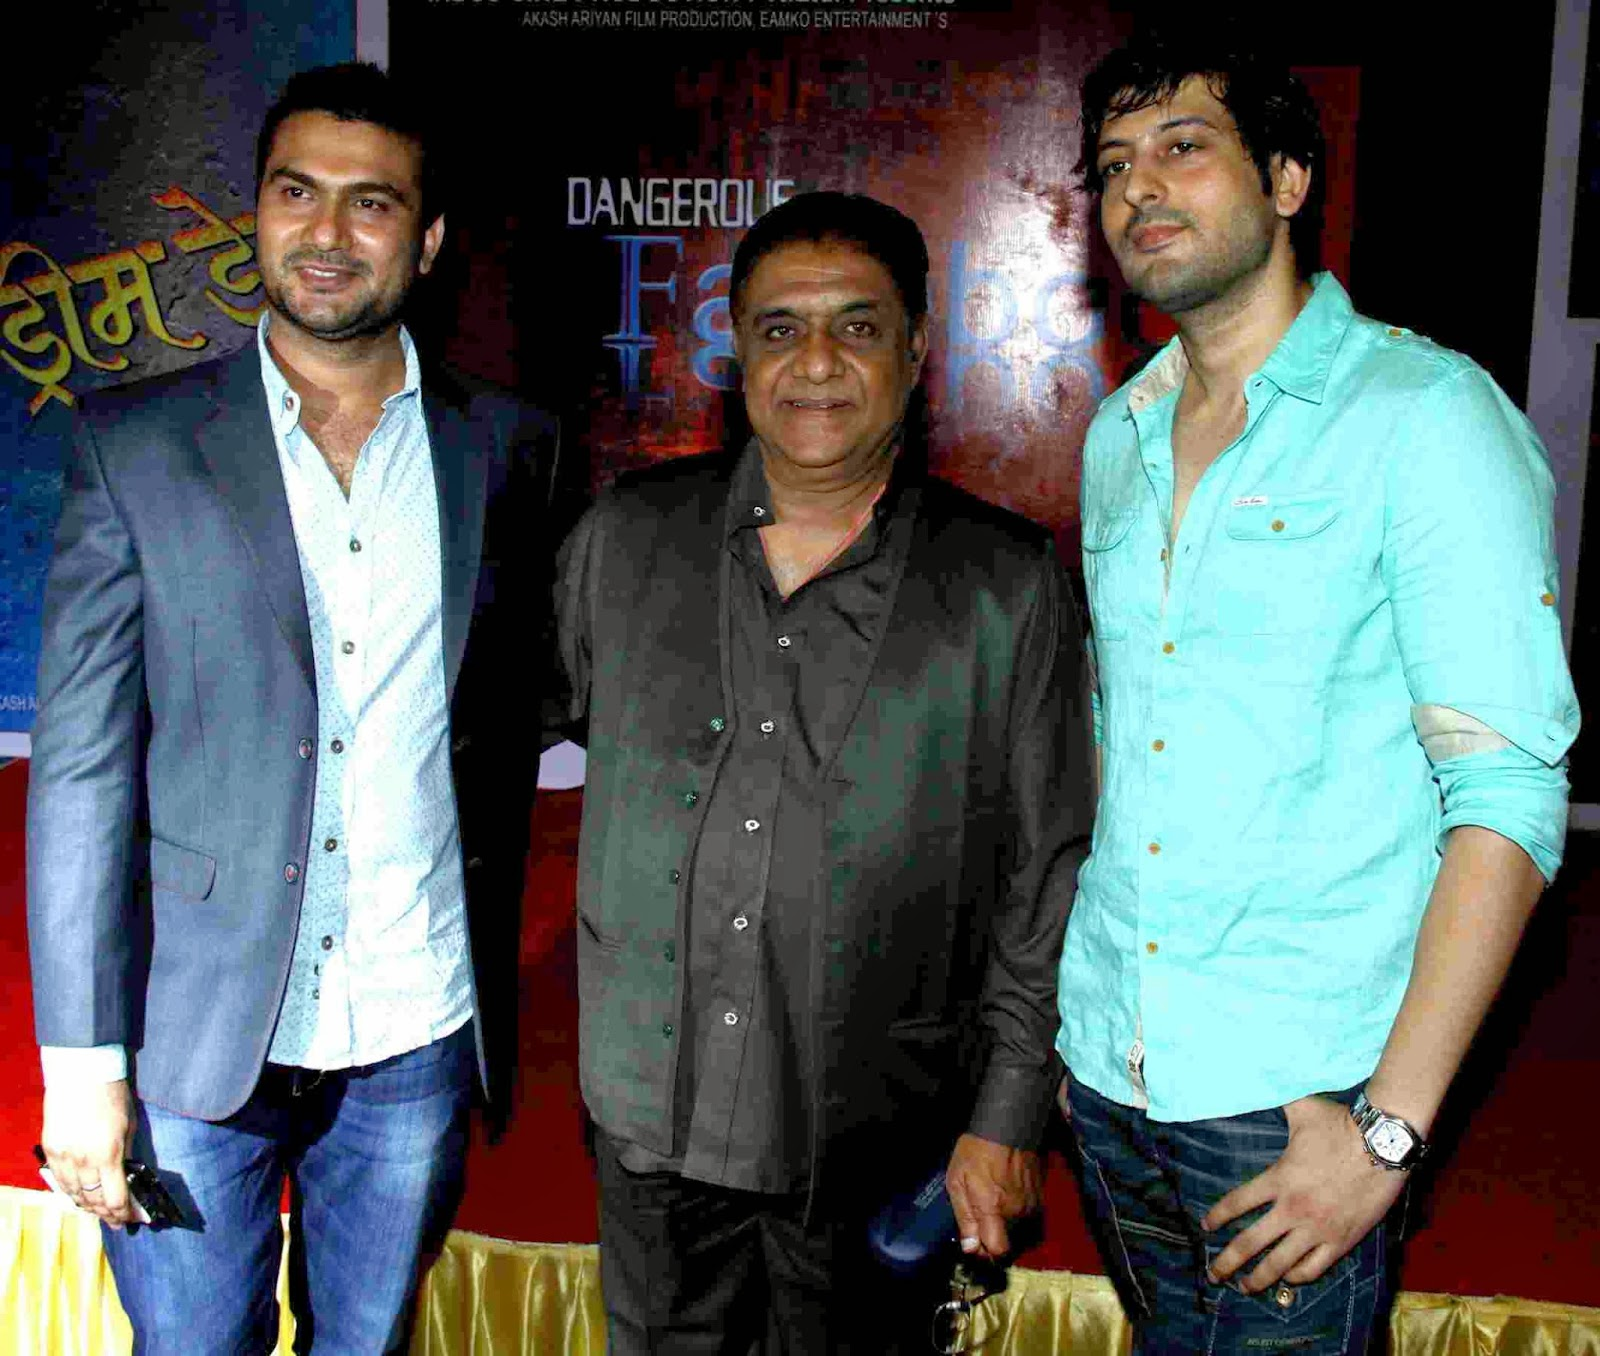 ORIENT PUBLICATION: Mahurat of One Hindi film Dangerous Facebook